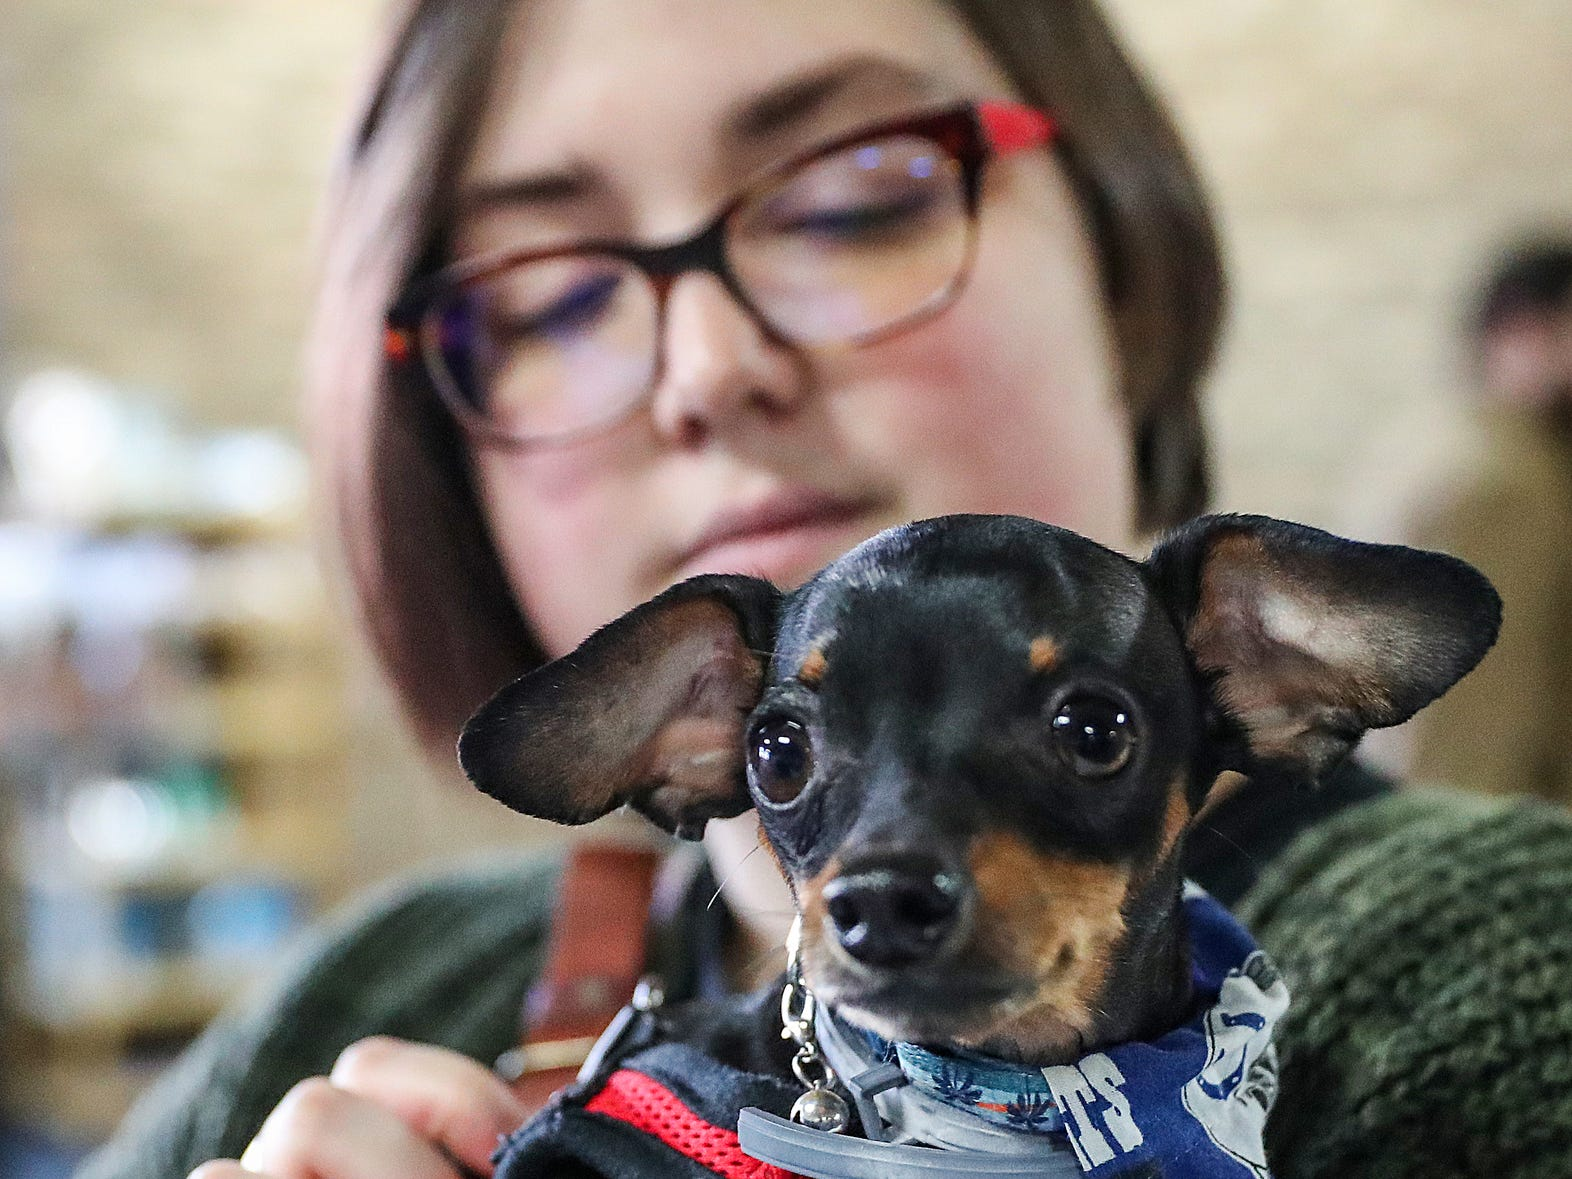 Ciara Chattin holds her mini pinscher Alfie during the grand opening of Indy's Indoor Bark Park in Indianapolis, Saturday, Jan, 5, 2019. The large indoor space offers owners a place to exercise their dogs regardless of the weather. Membership options include single-day, multi-day and annual passes.